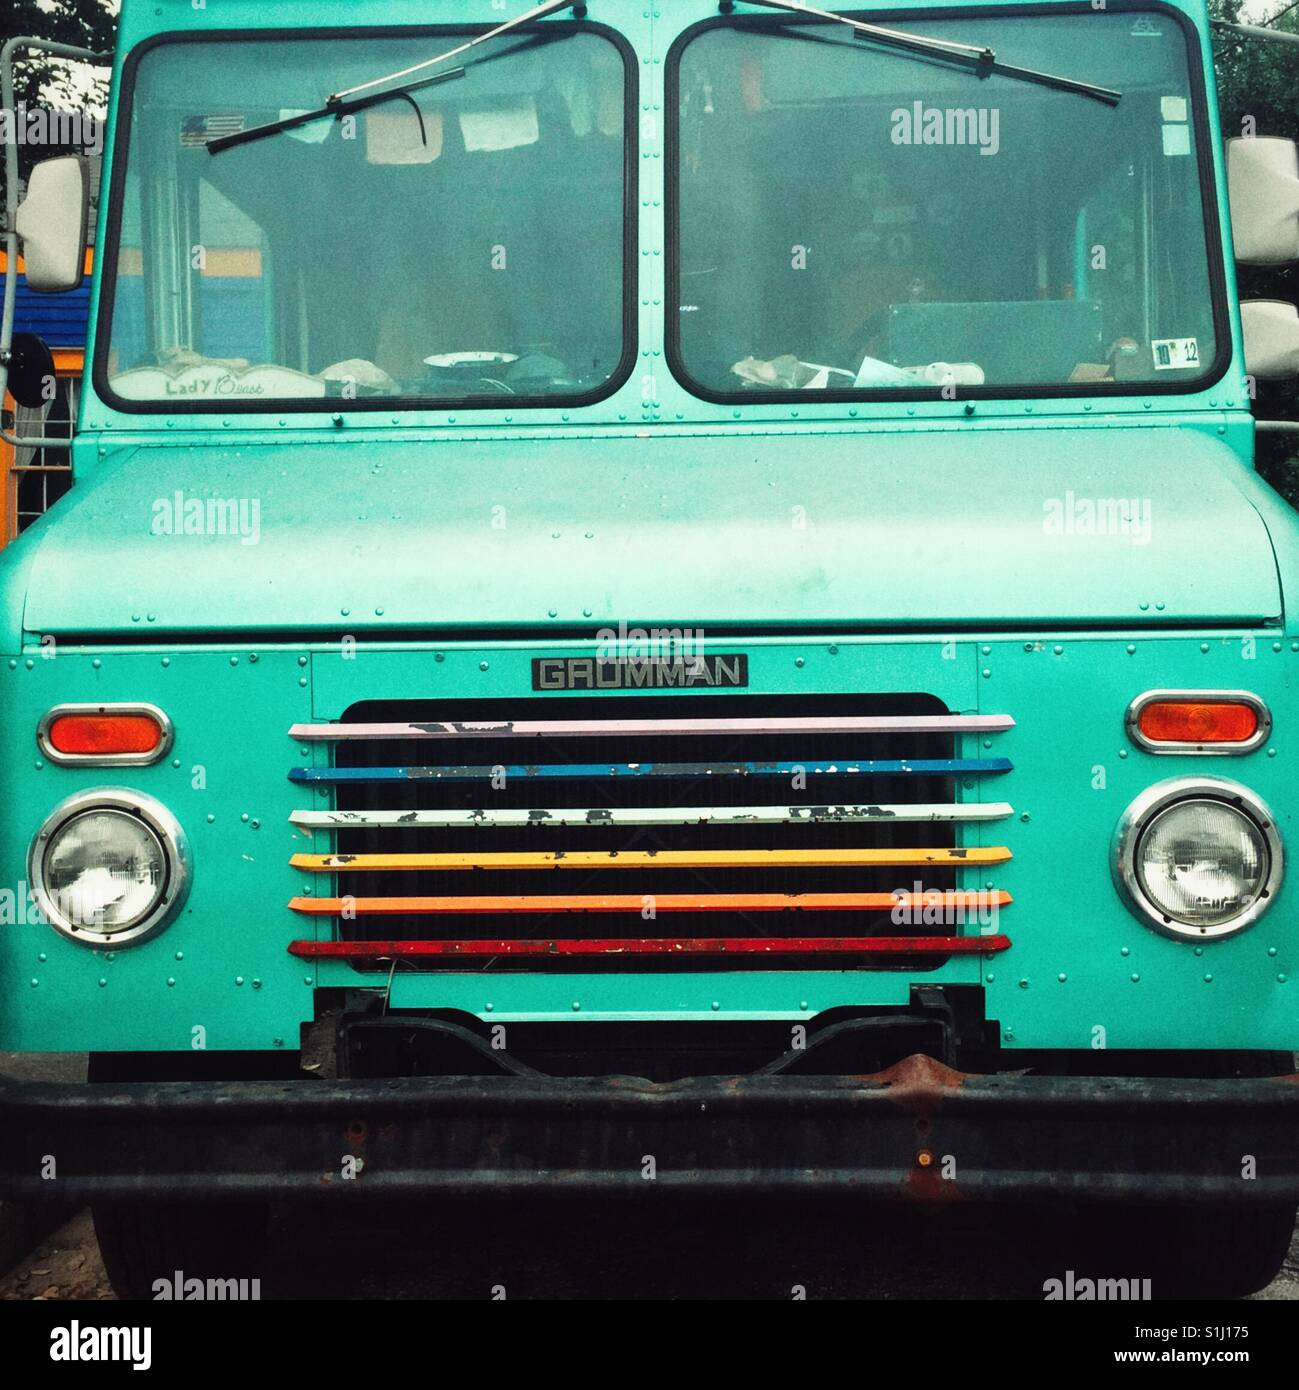 Turquoise colored truck with rainbow painted grill in front on the street in New Orleans - Stock Image